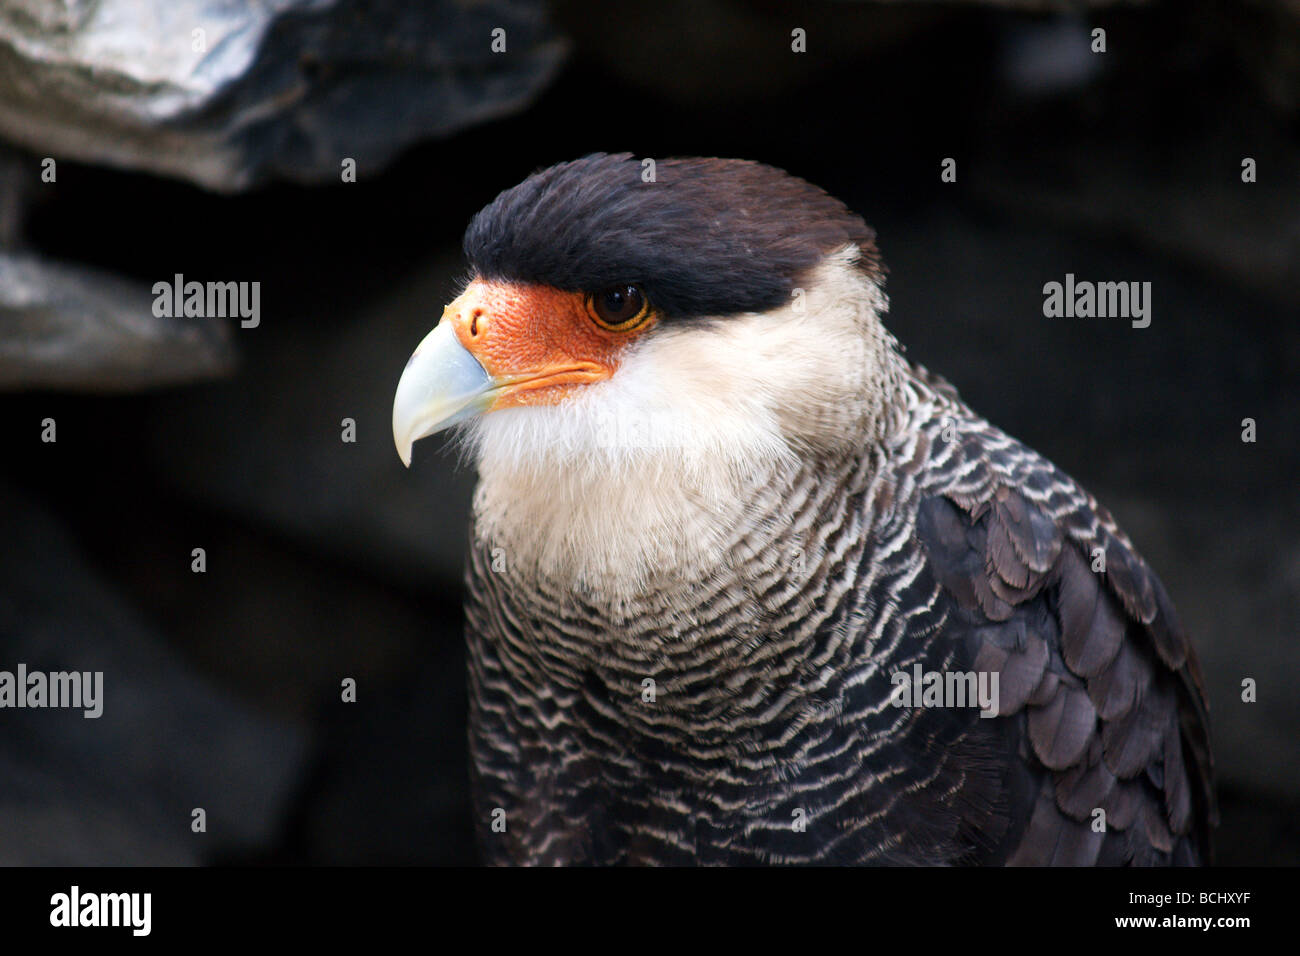 Crested Caracara. Close up of adult. - Stock Image